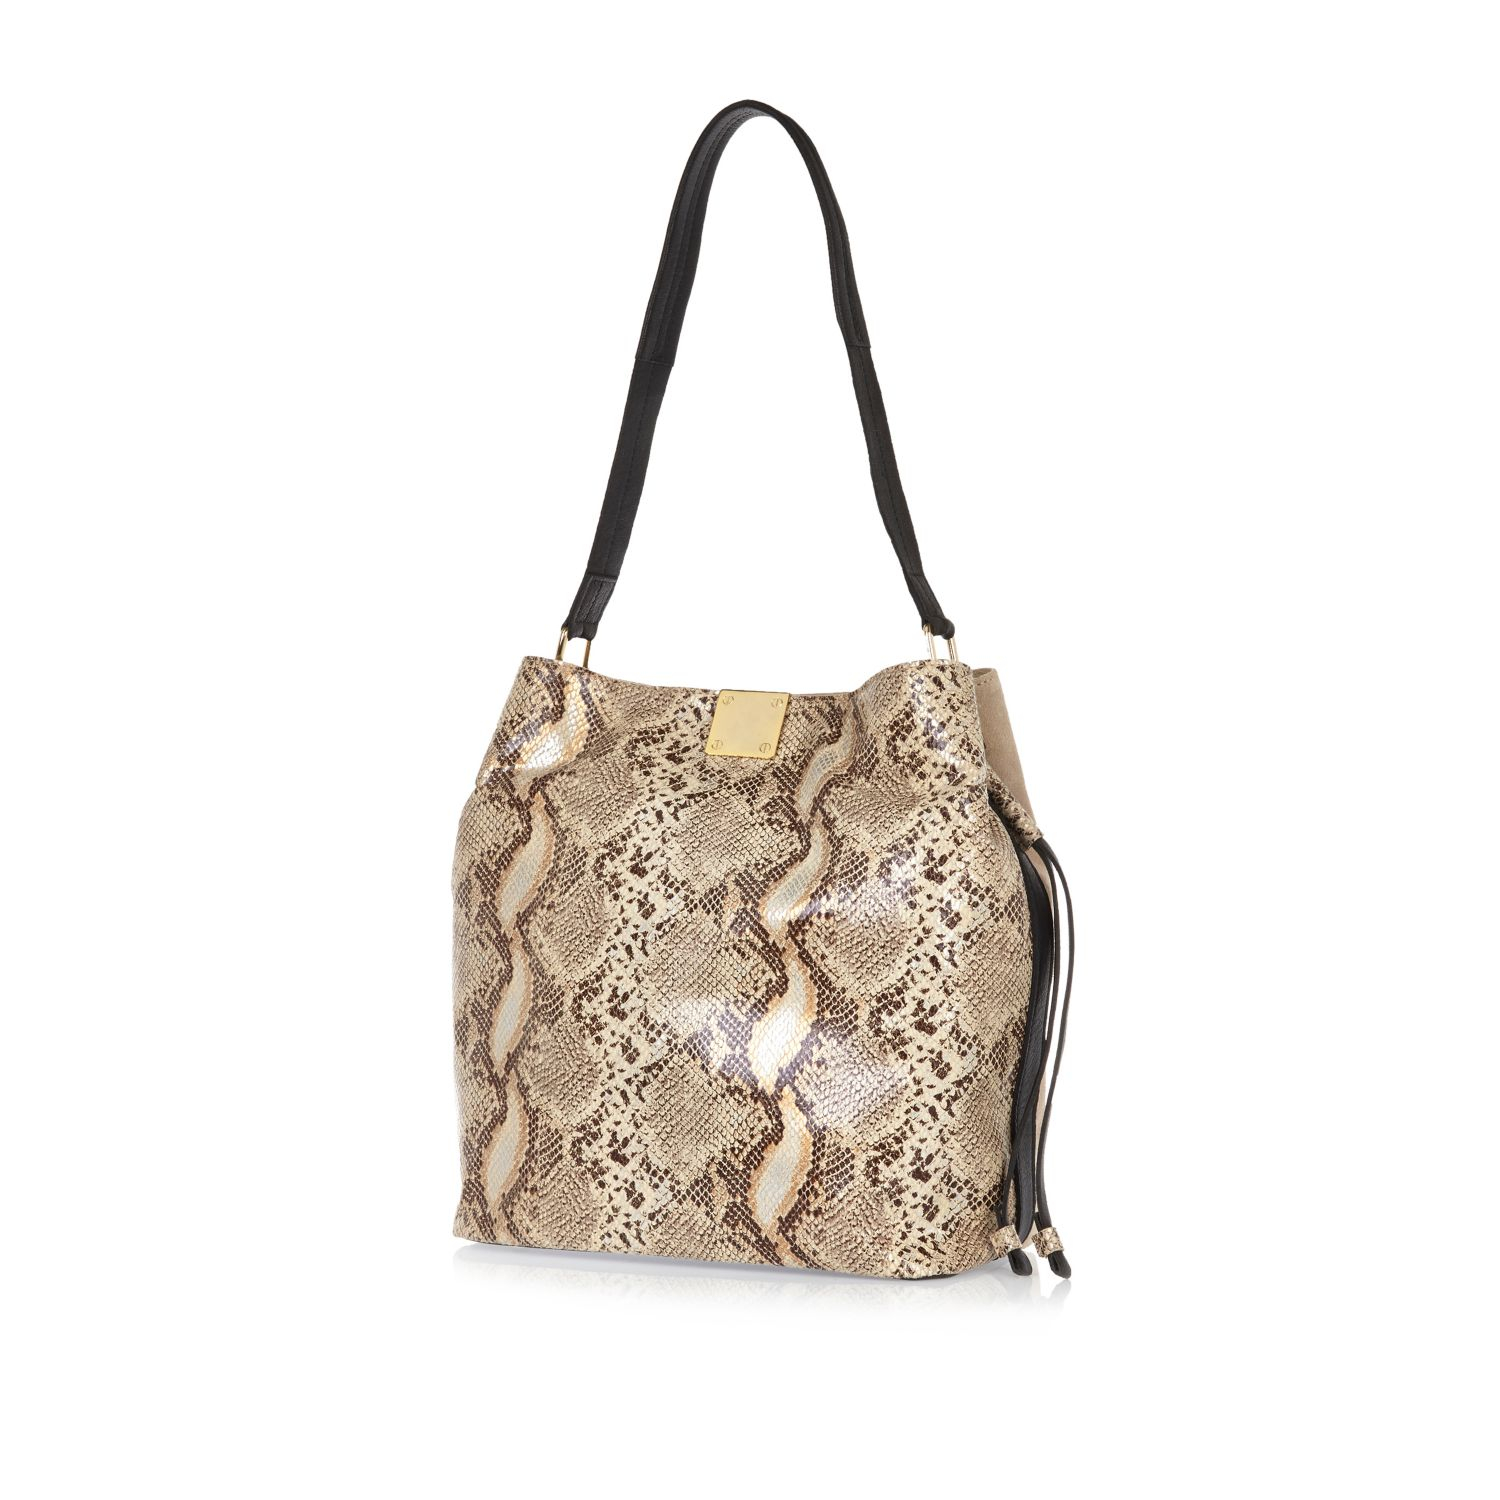 131cbe77 River Island Cream Snake Print Suede Slouchy Bucket Bag in Natural ...